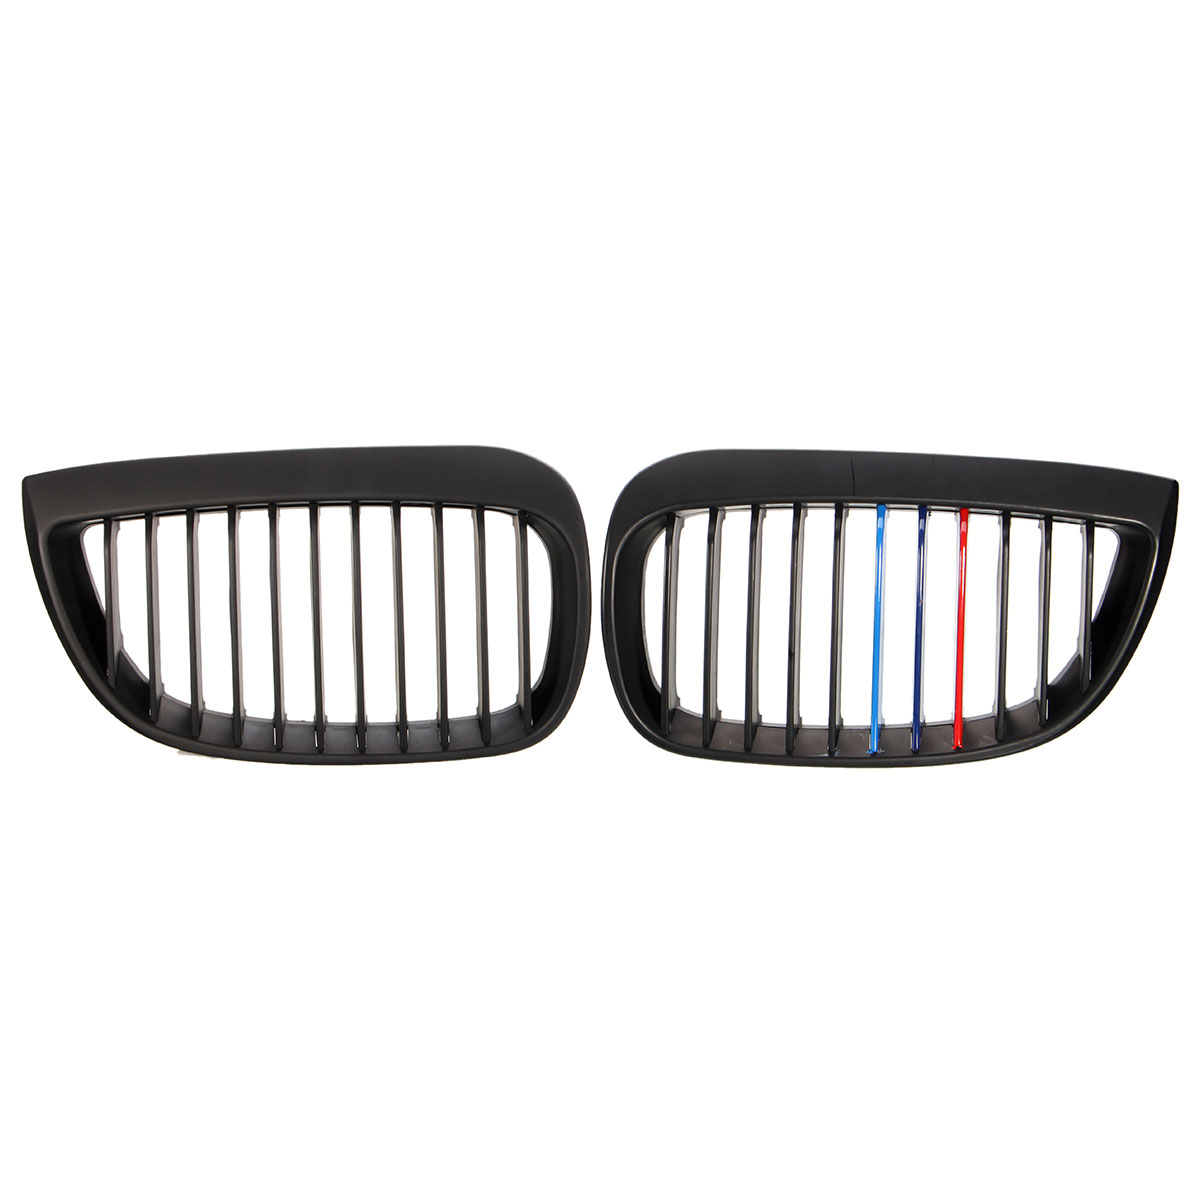 Left And Right Front Sport Kidney Grill Grille For BMW E81 E87 1 Series